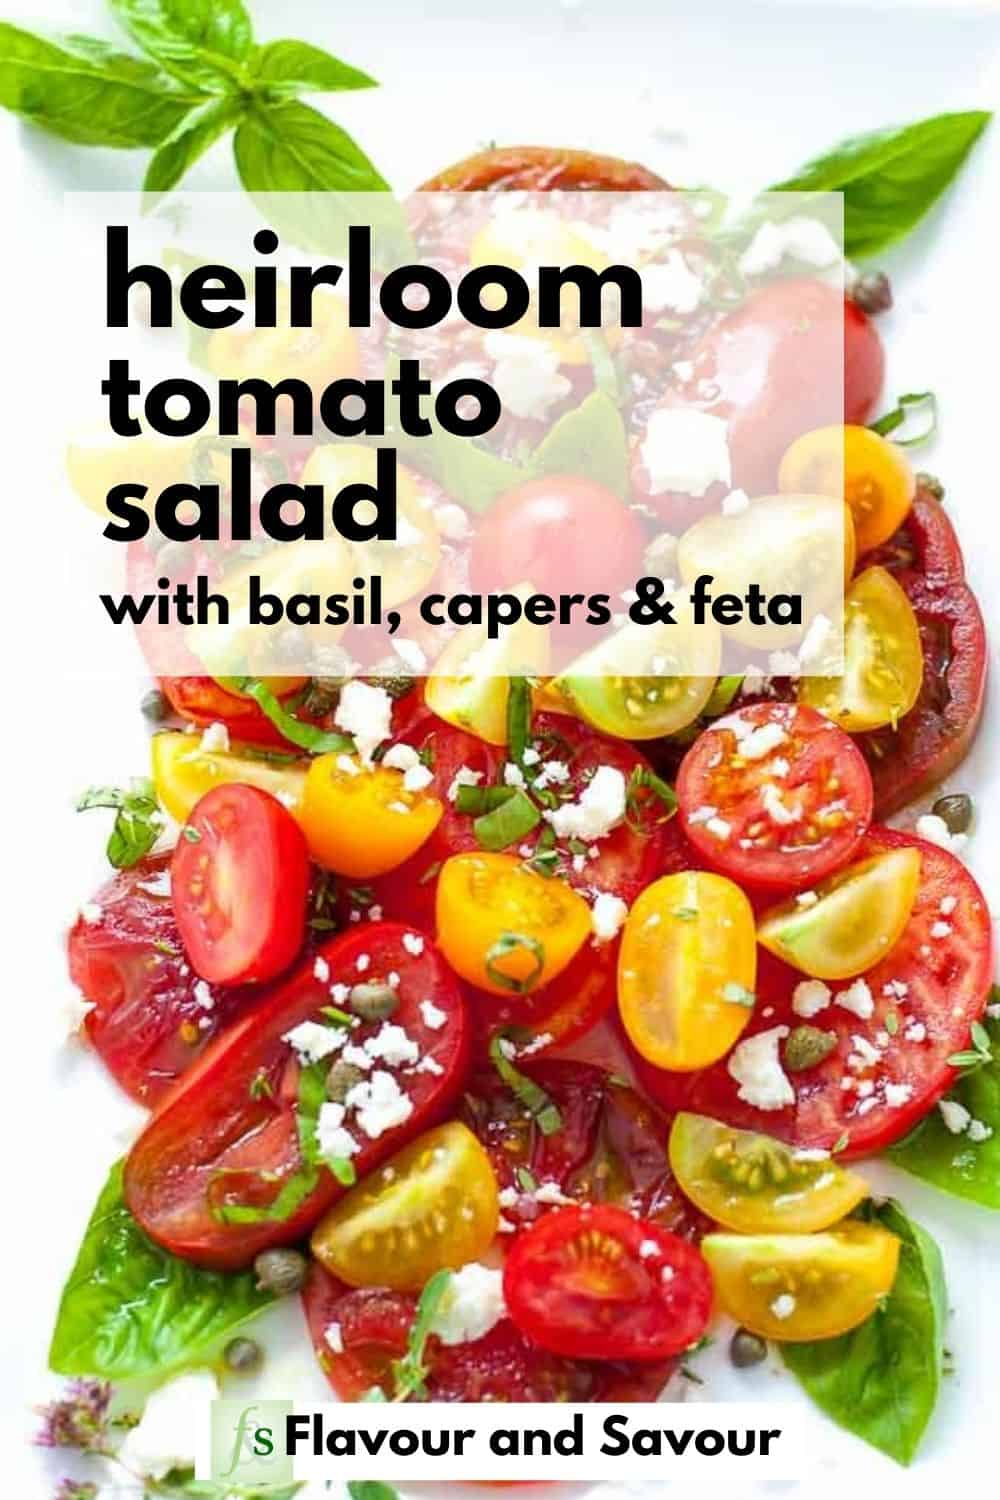 Pinterest Pin for Heirloom Tomato Salad with text overlay